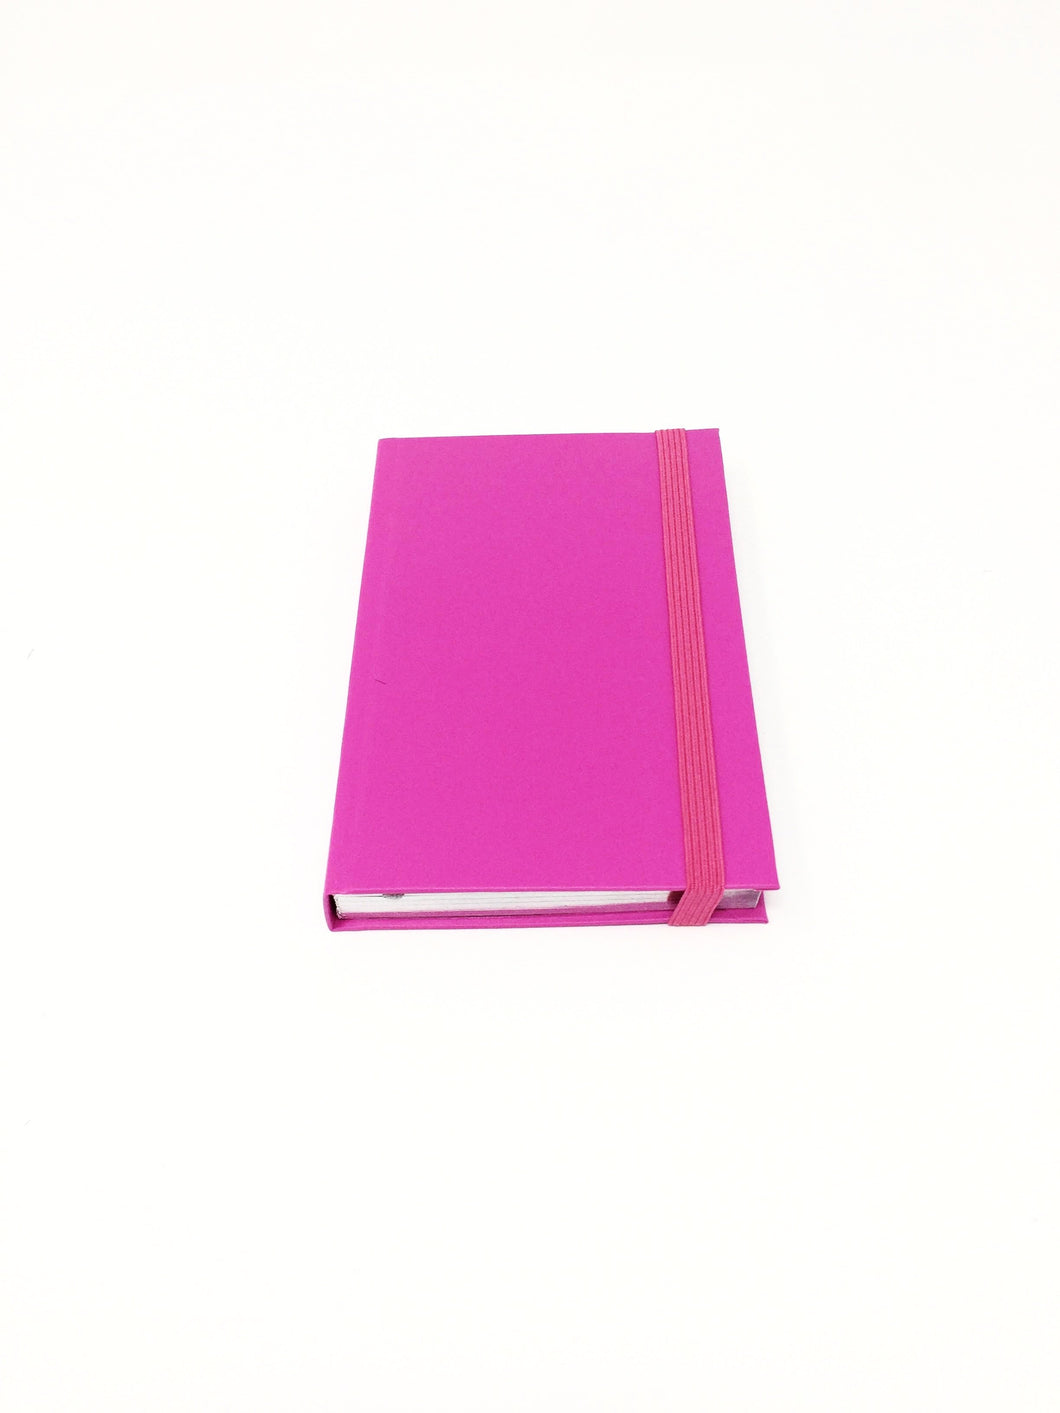 Italian small pink lined notebook